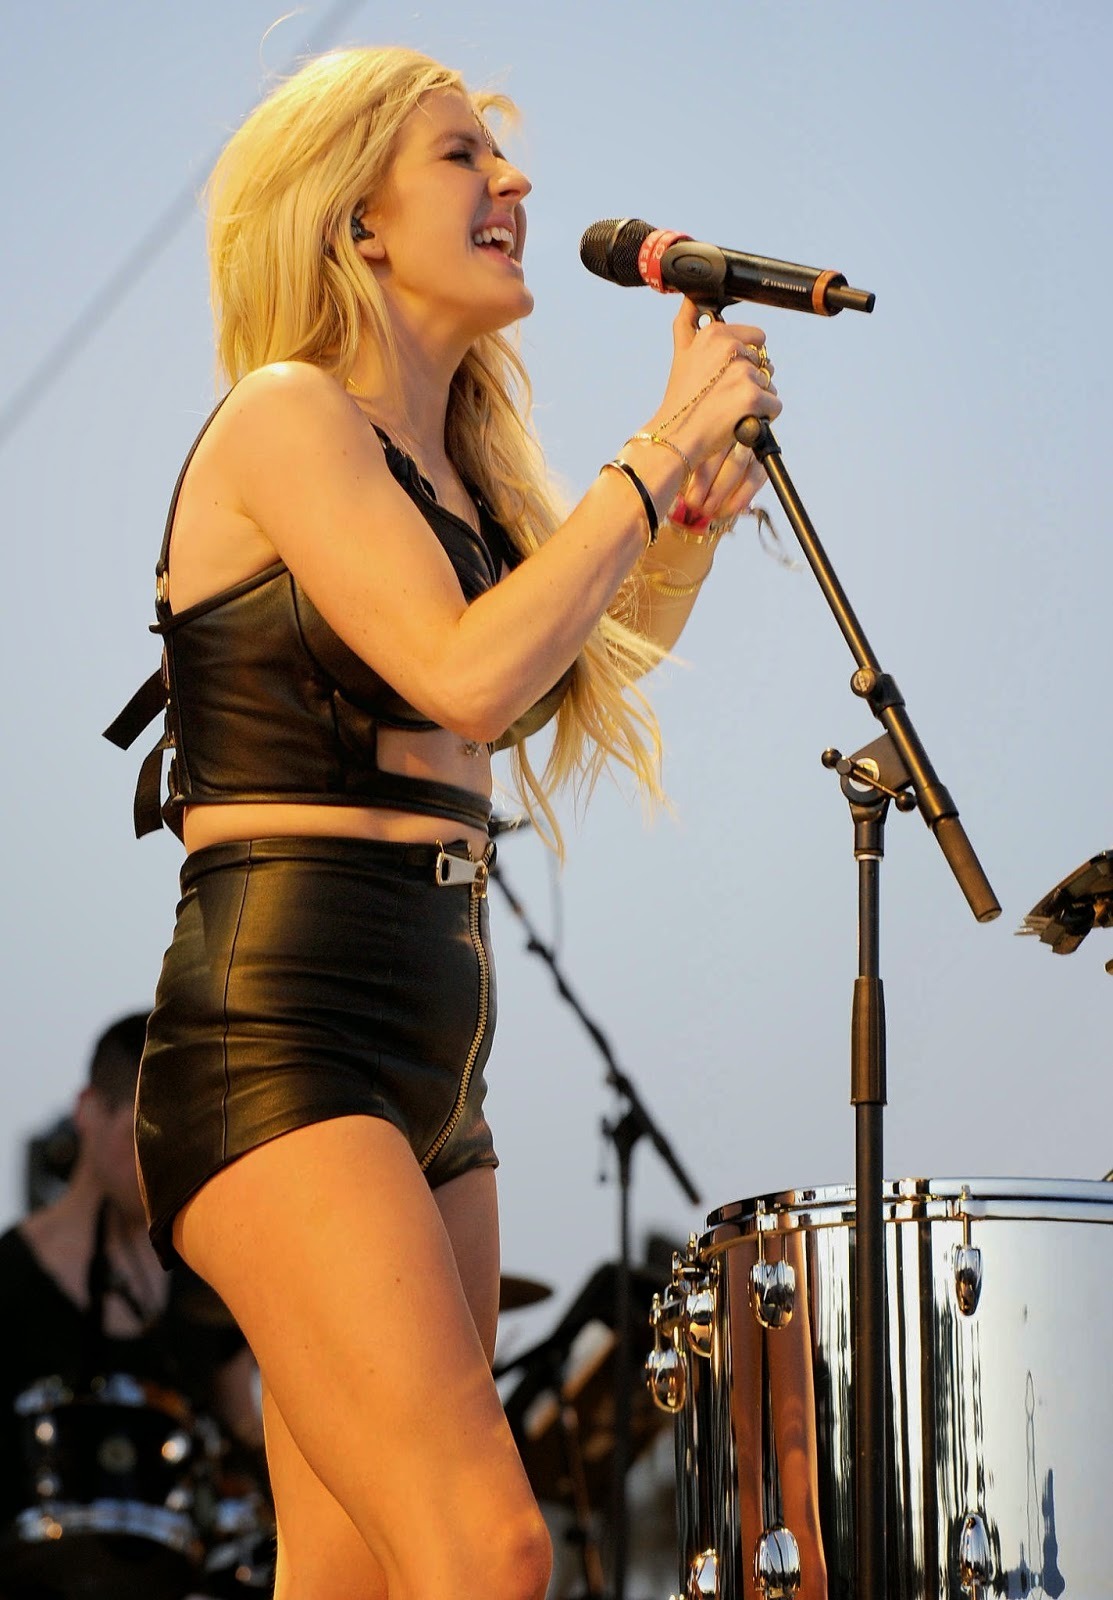 Ellie Goulding performs at Coachella in a skimpy black leather outfit